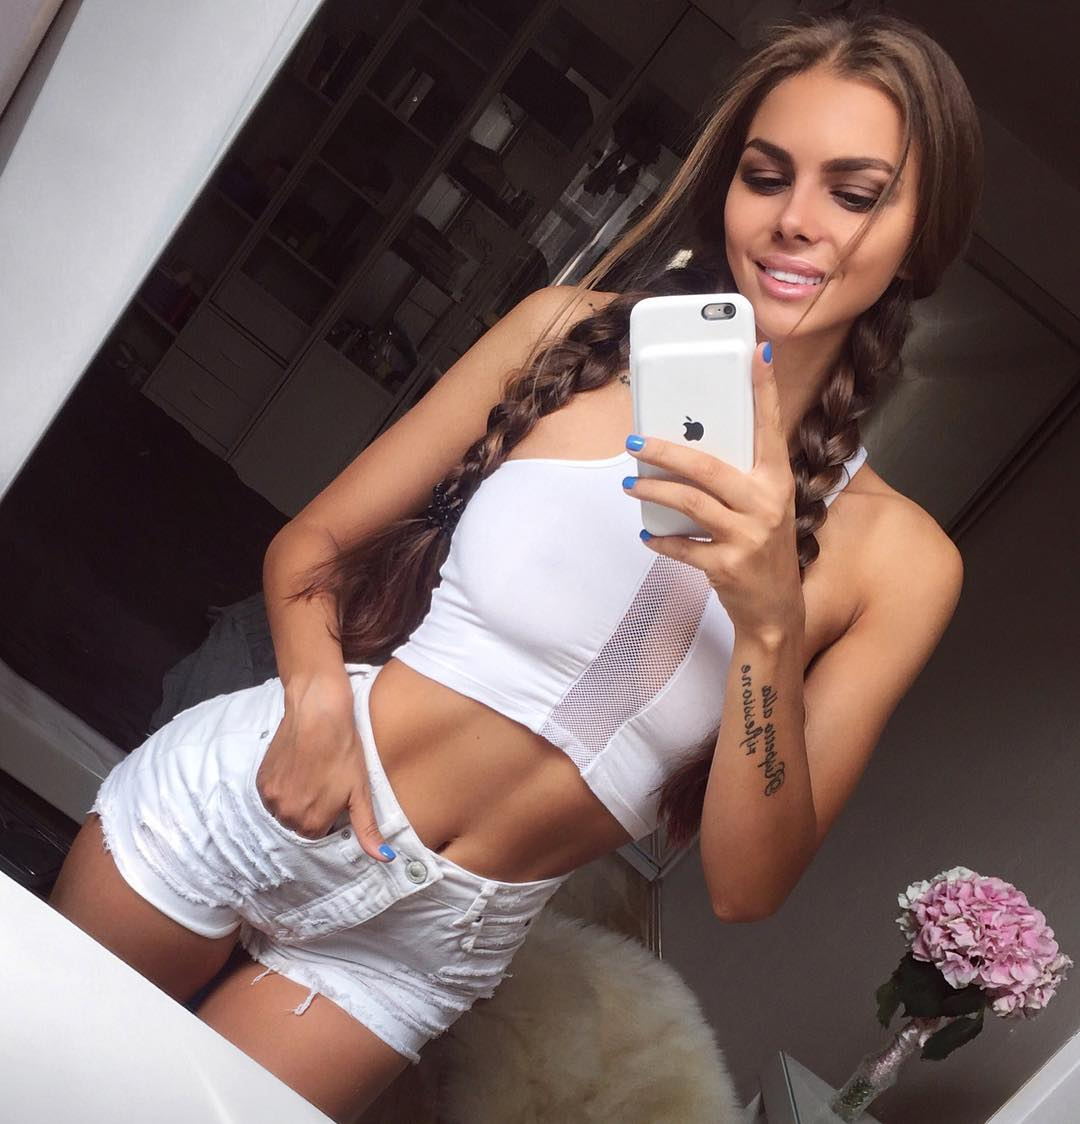 Viki Odintcova Looks Hot in White Sports Dress